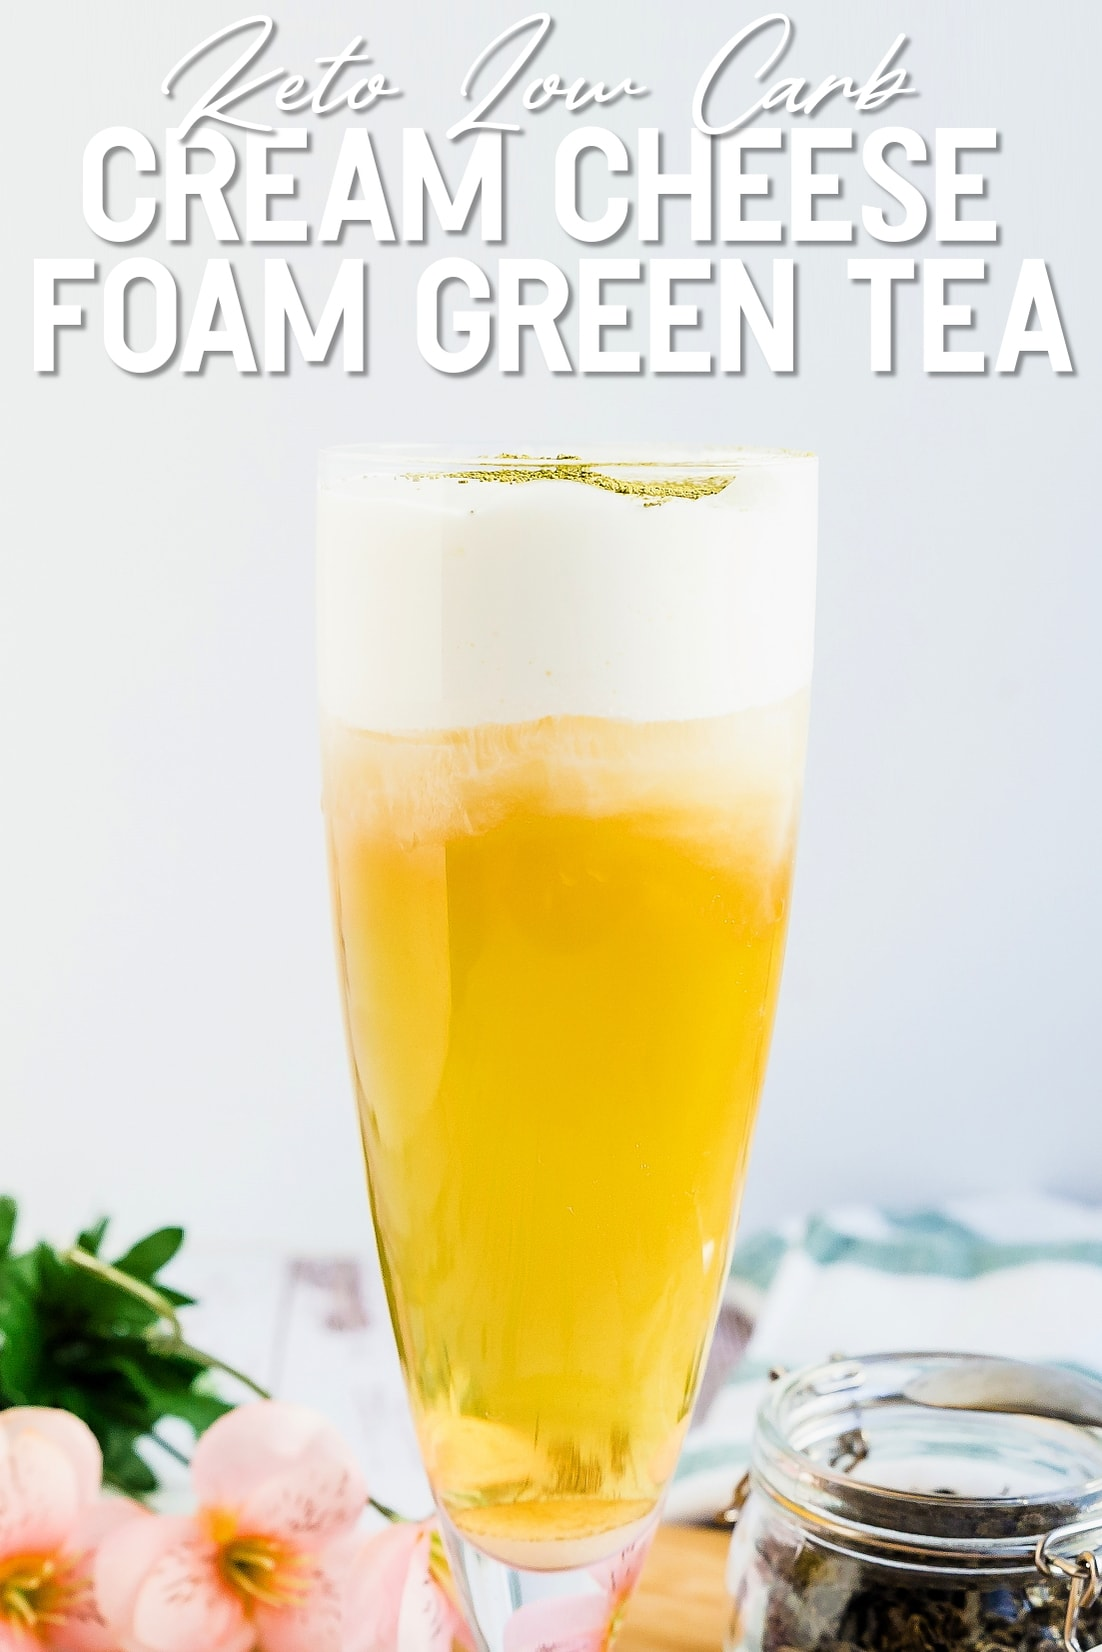 Cream Cheese Foam Green Tea Side View